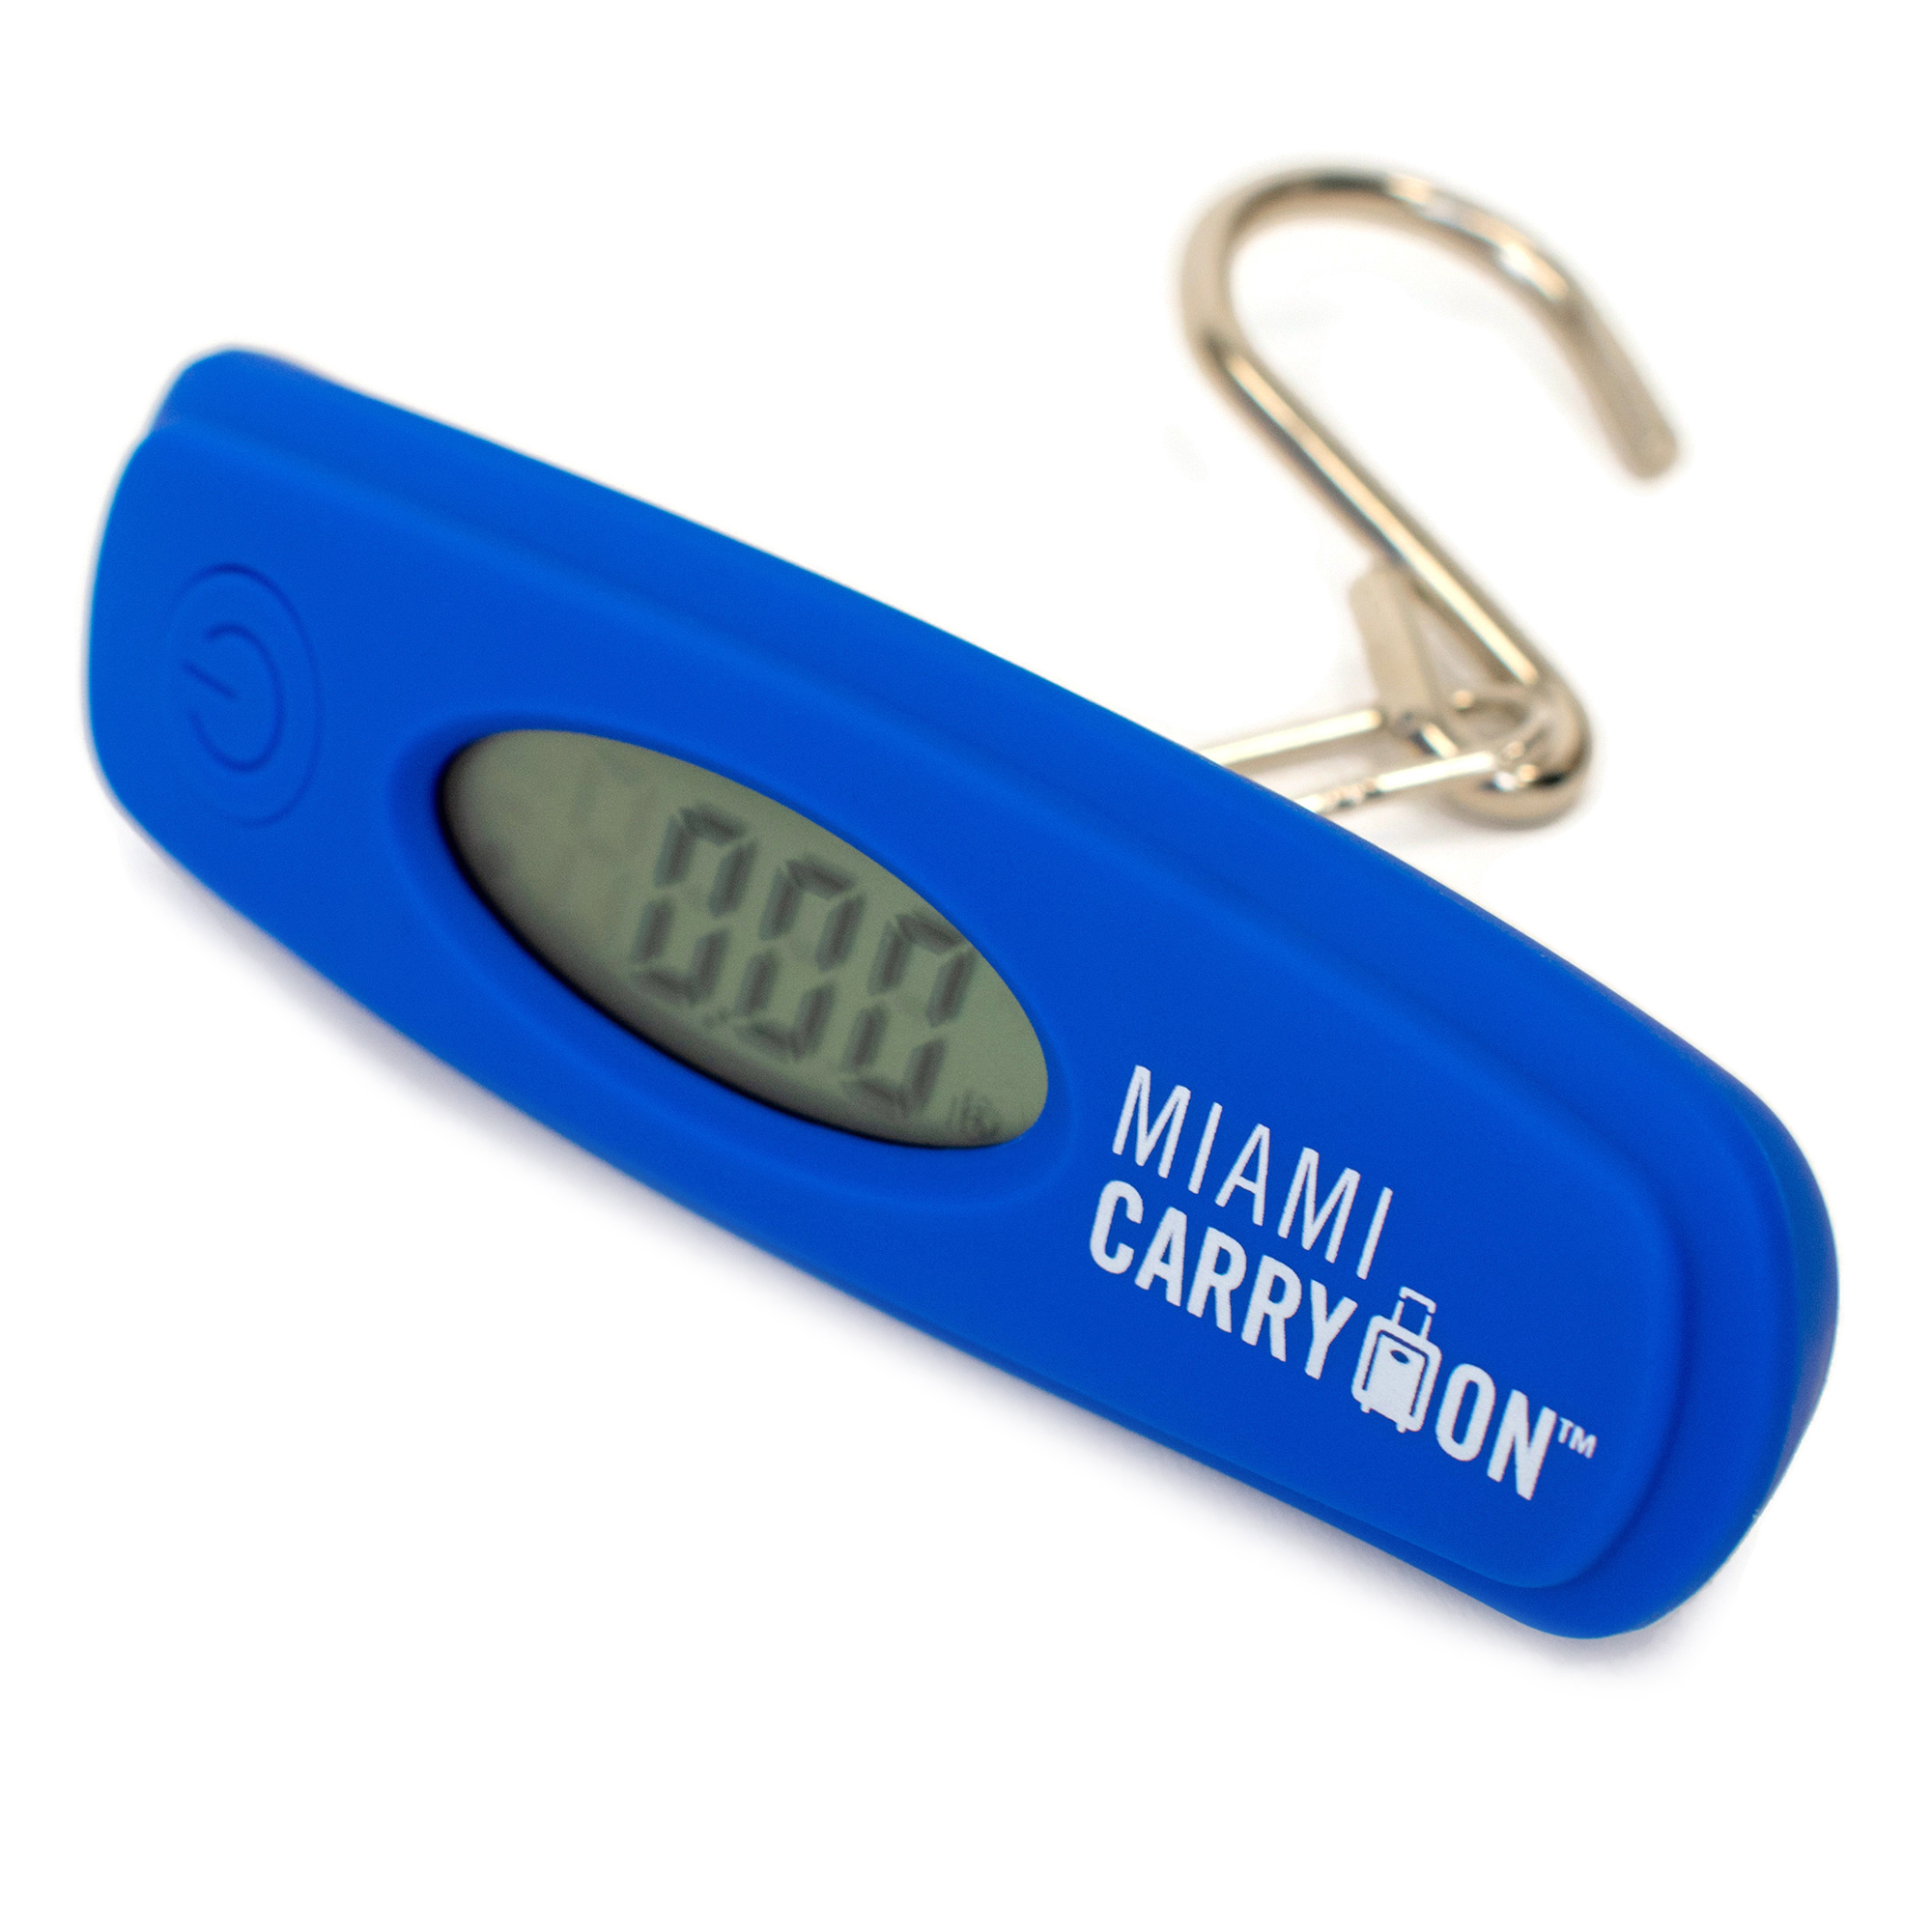 Digital Luggage Scale with Stainless Steel Hook - Blue - Travellty